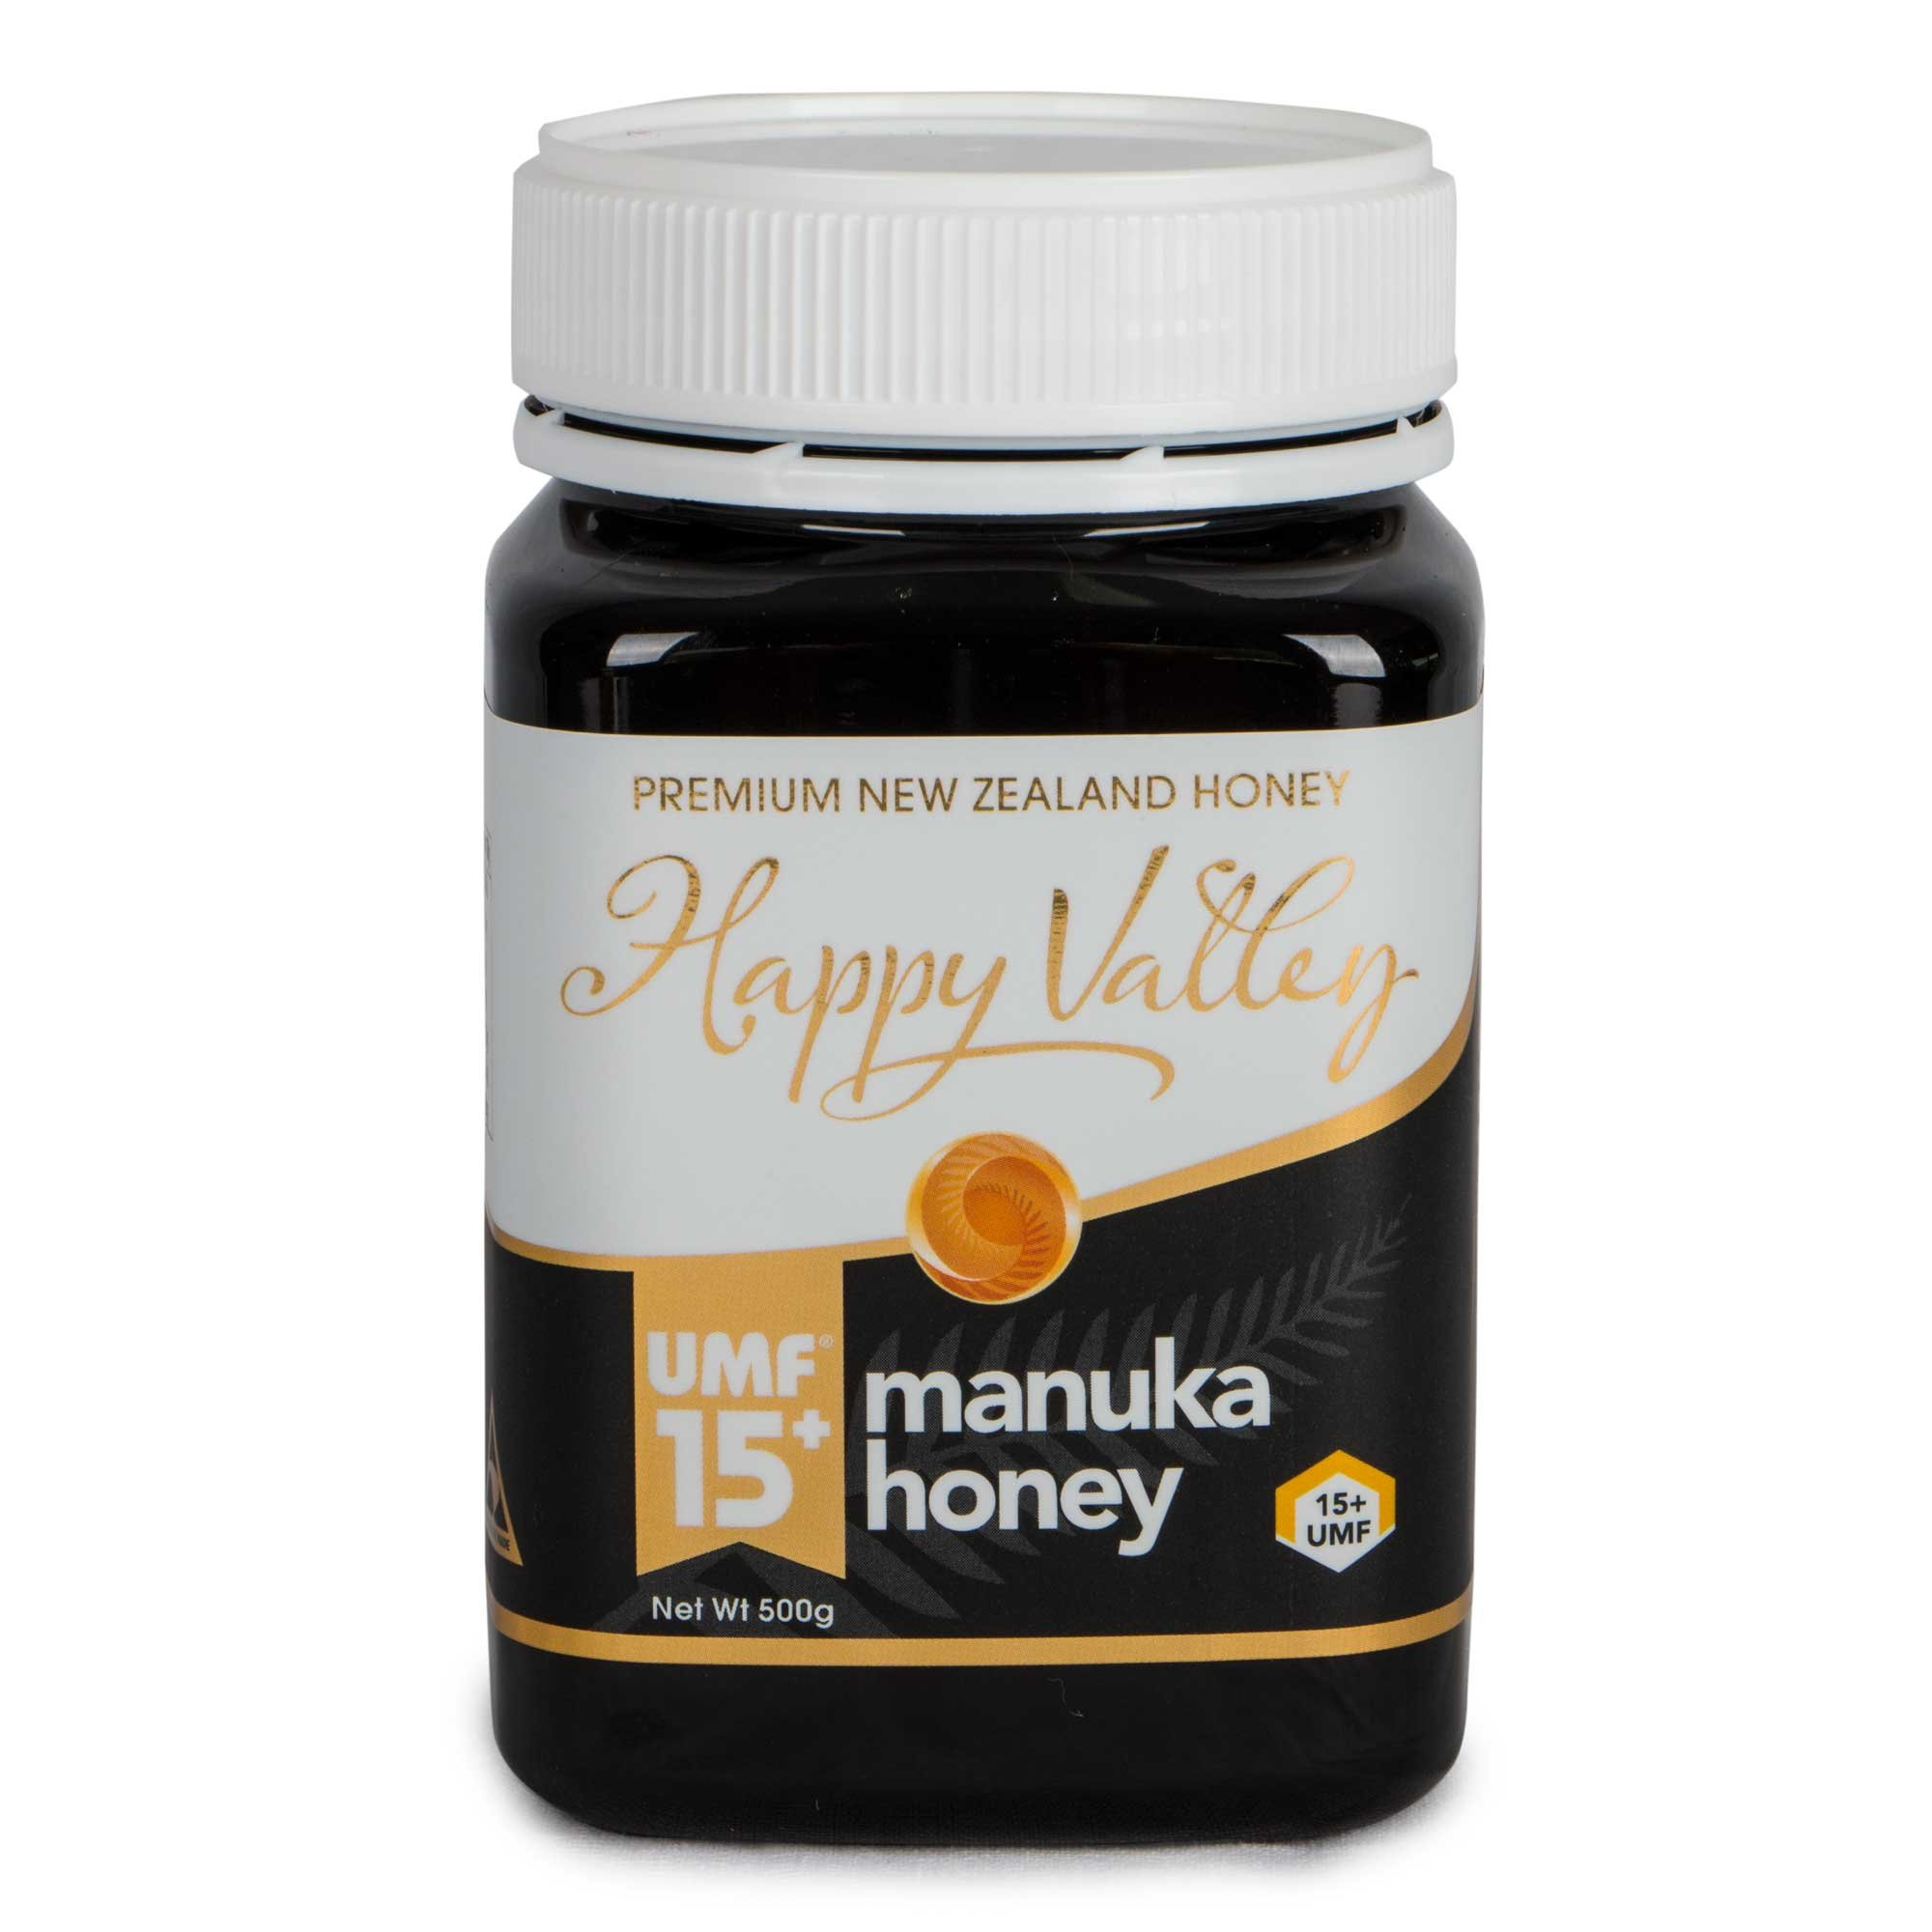 Happy Valley UMF 15+ Manuka Honey, 500g (17.6oz)